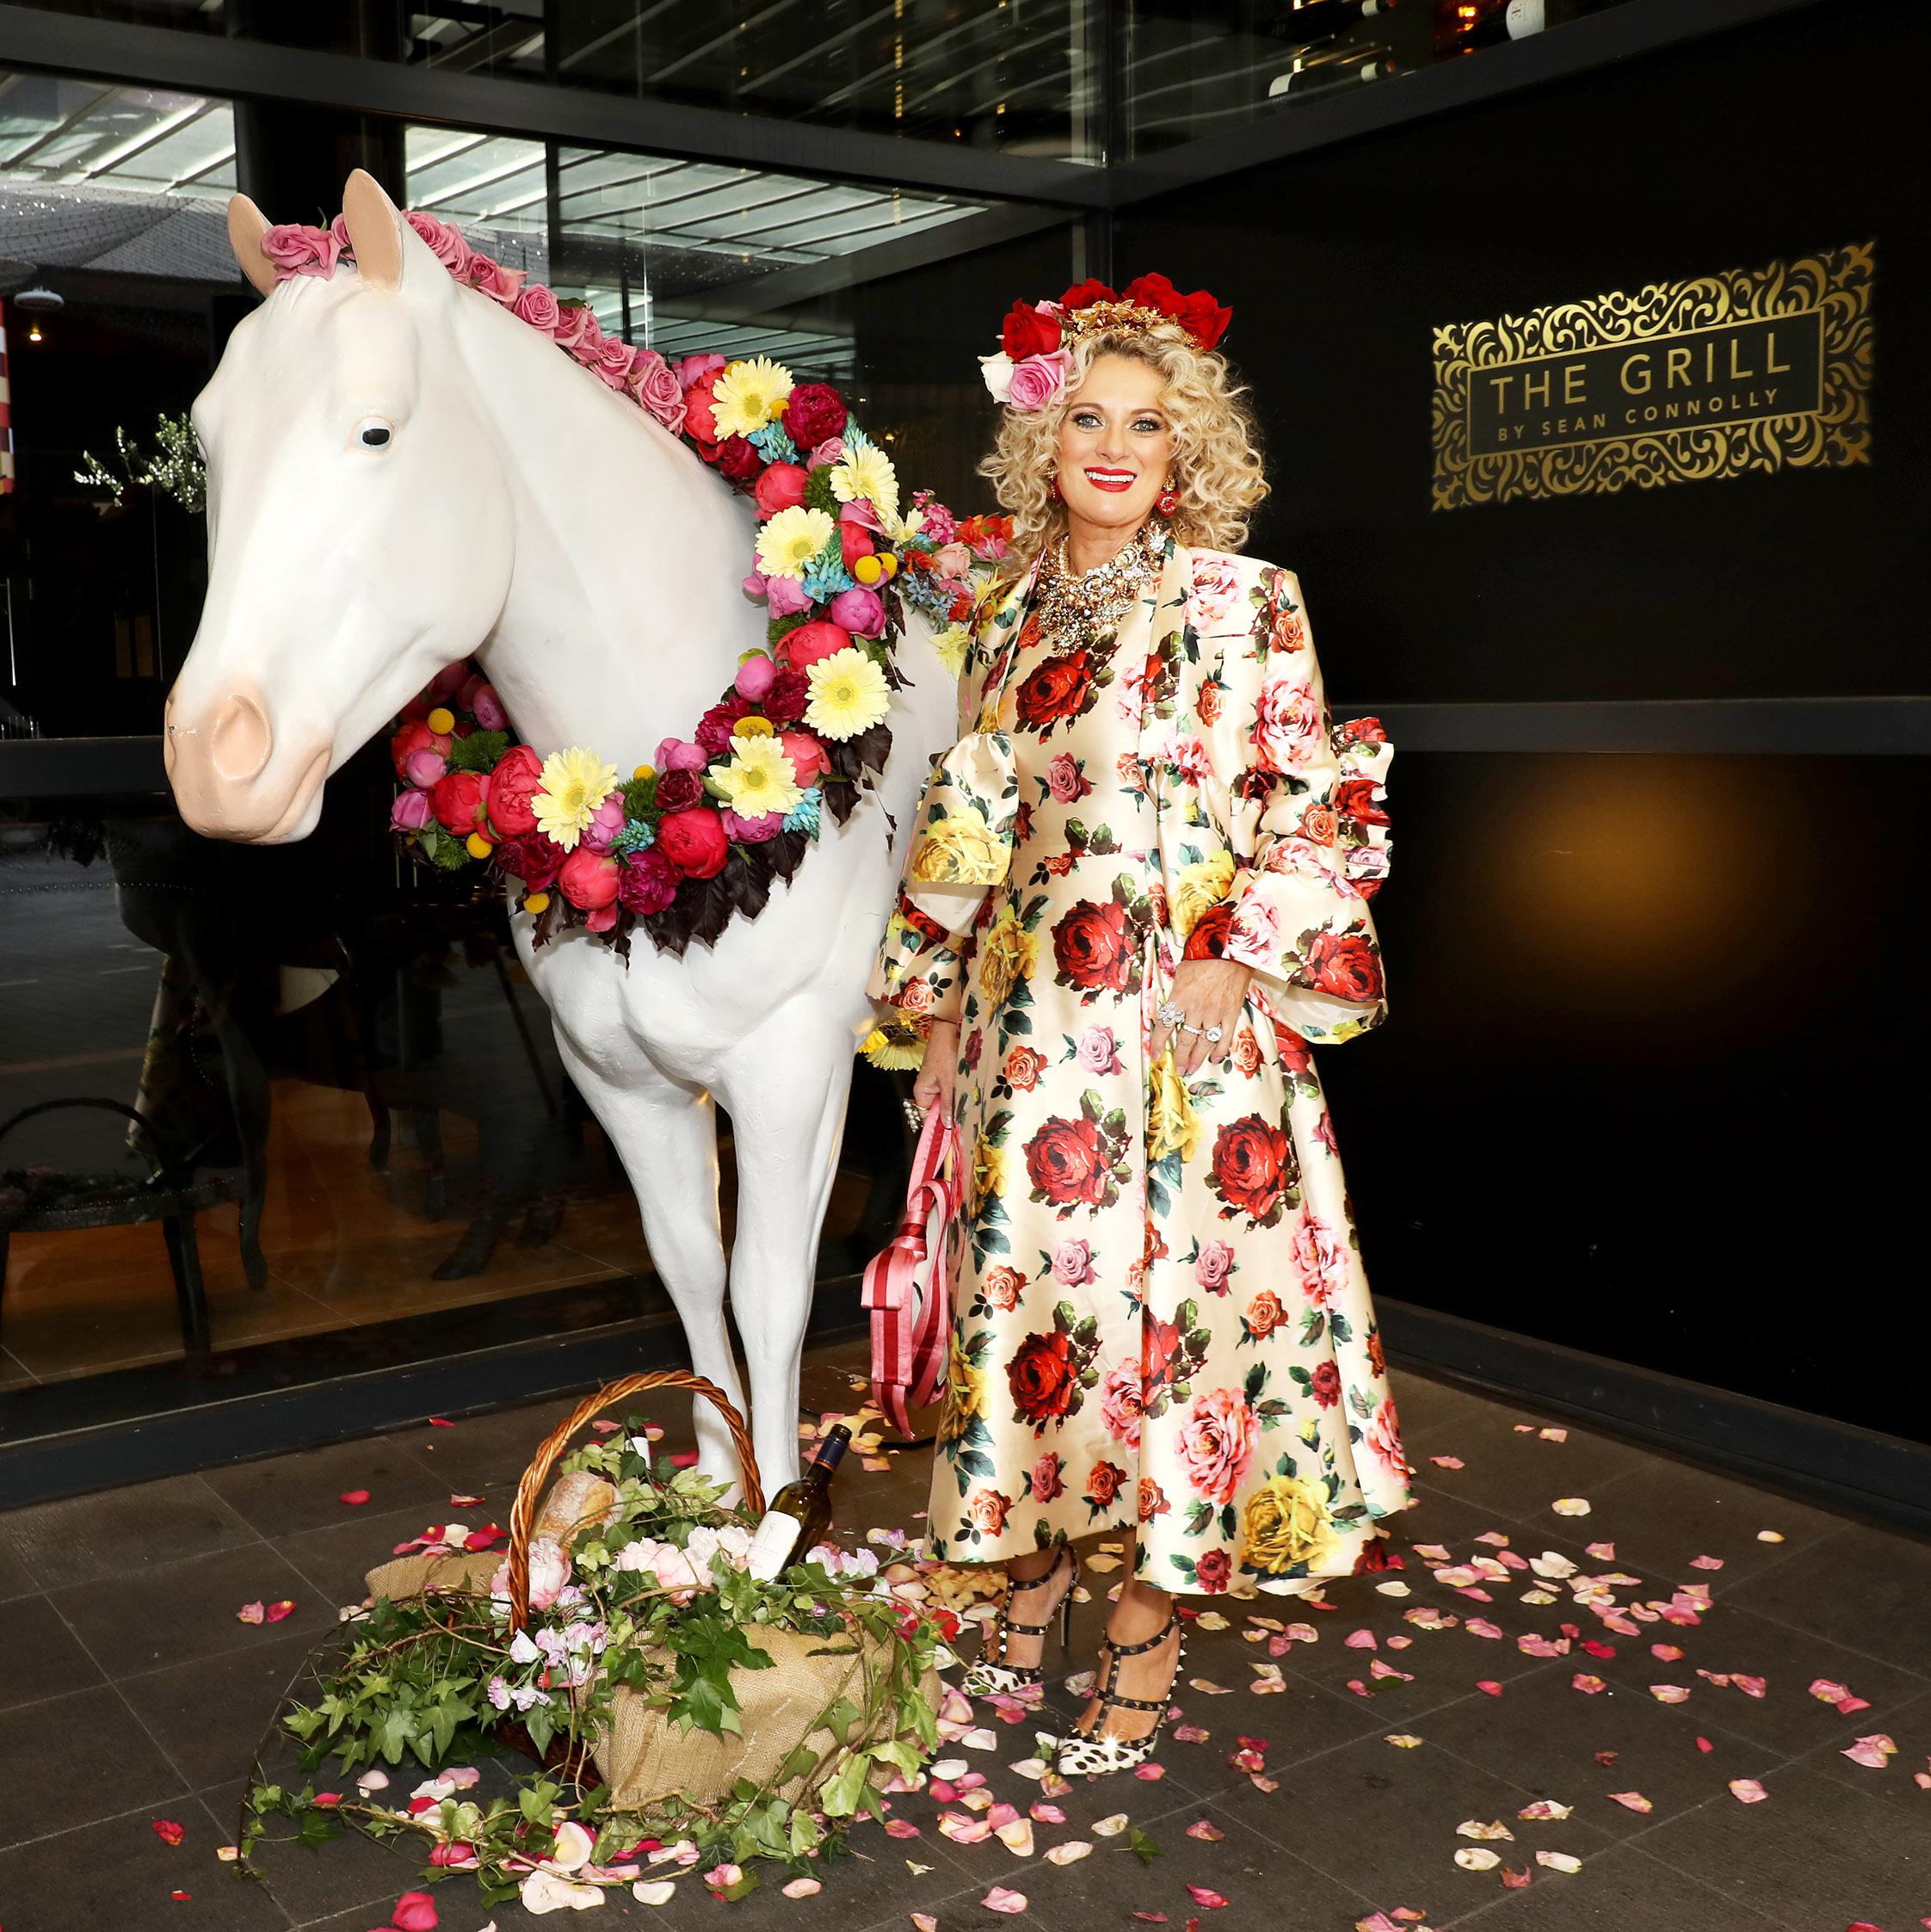 The Best Dressed From Trelise Cooper and SkyCity's